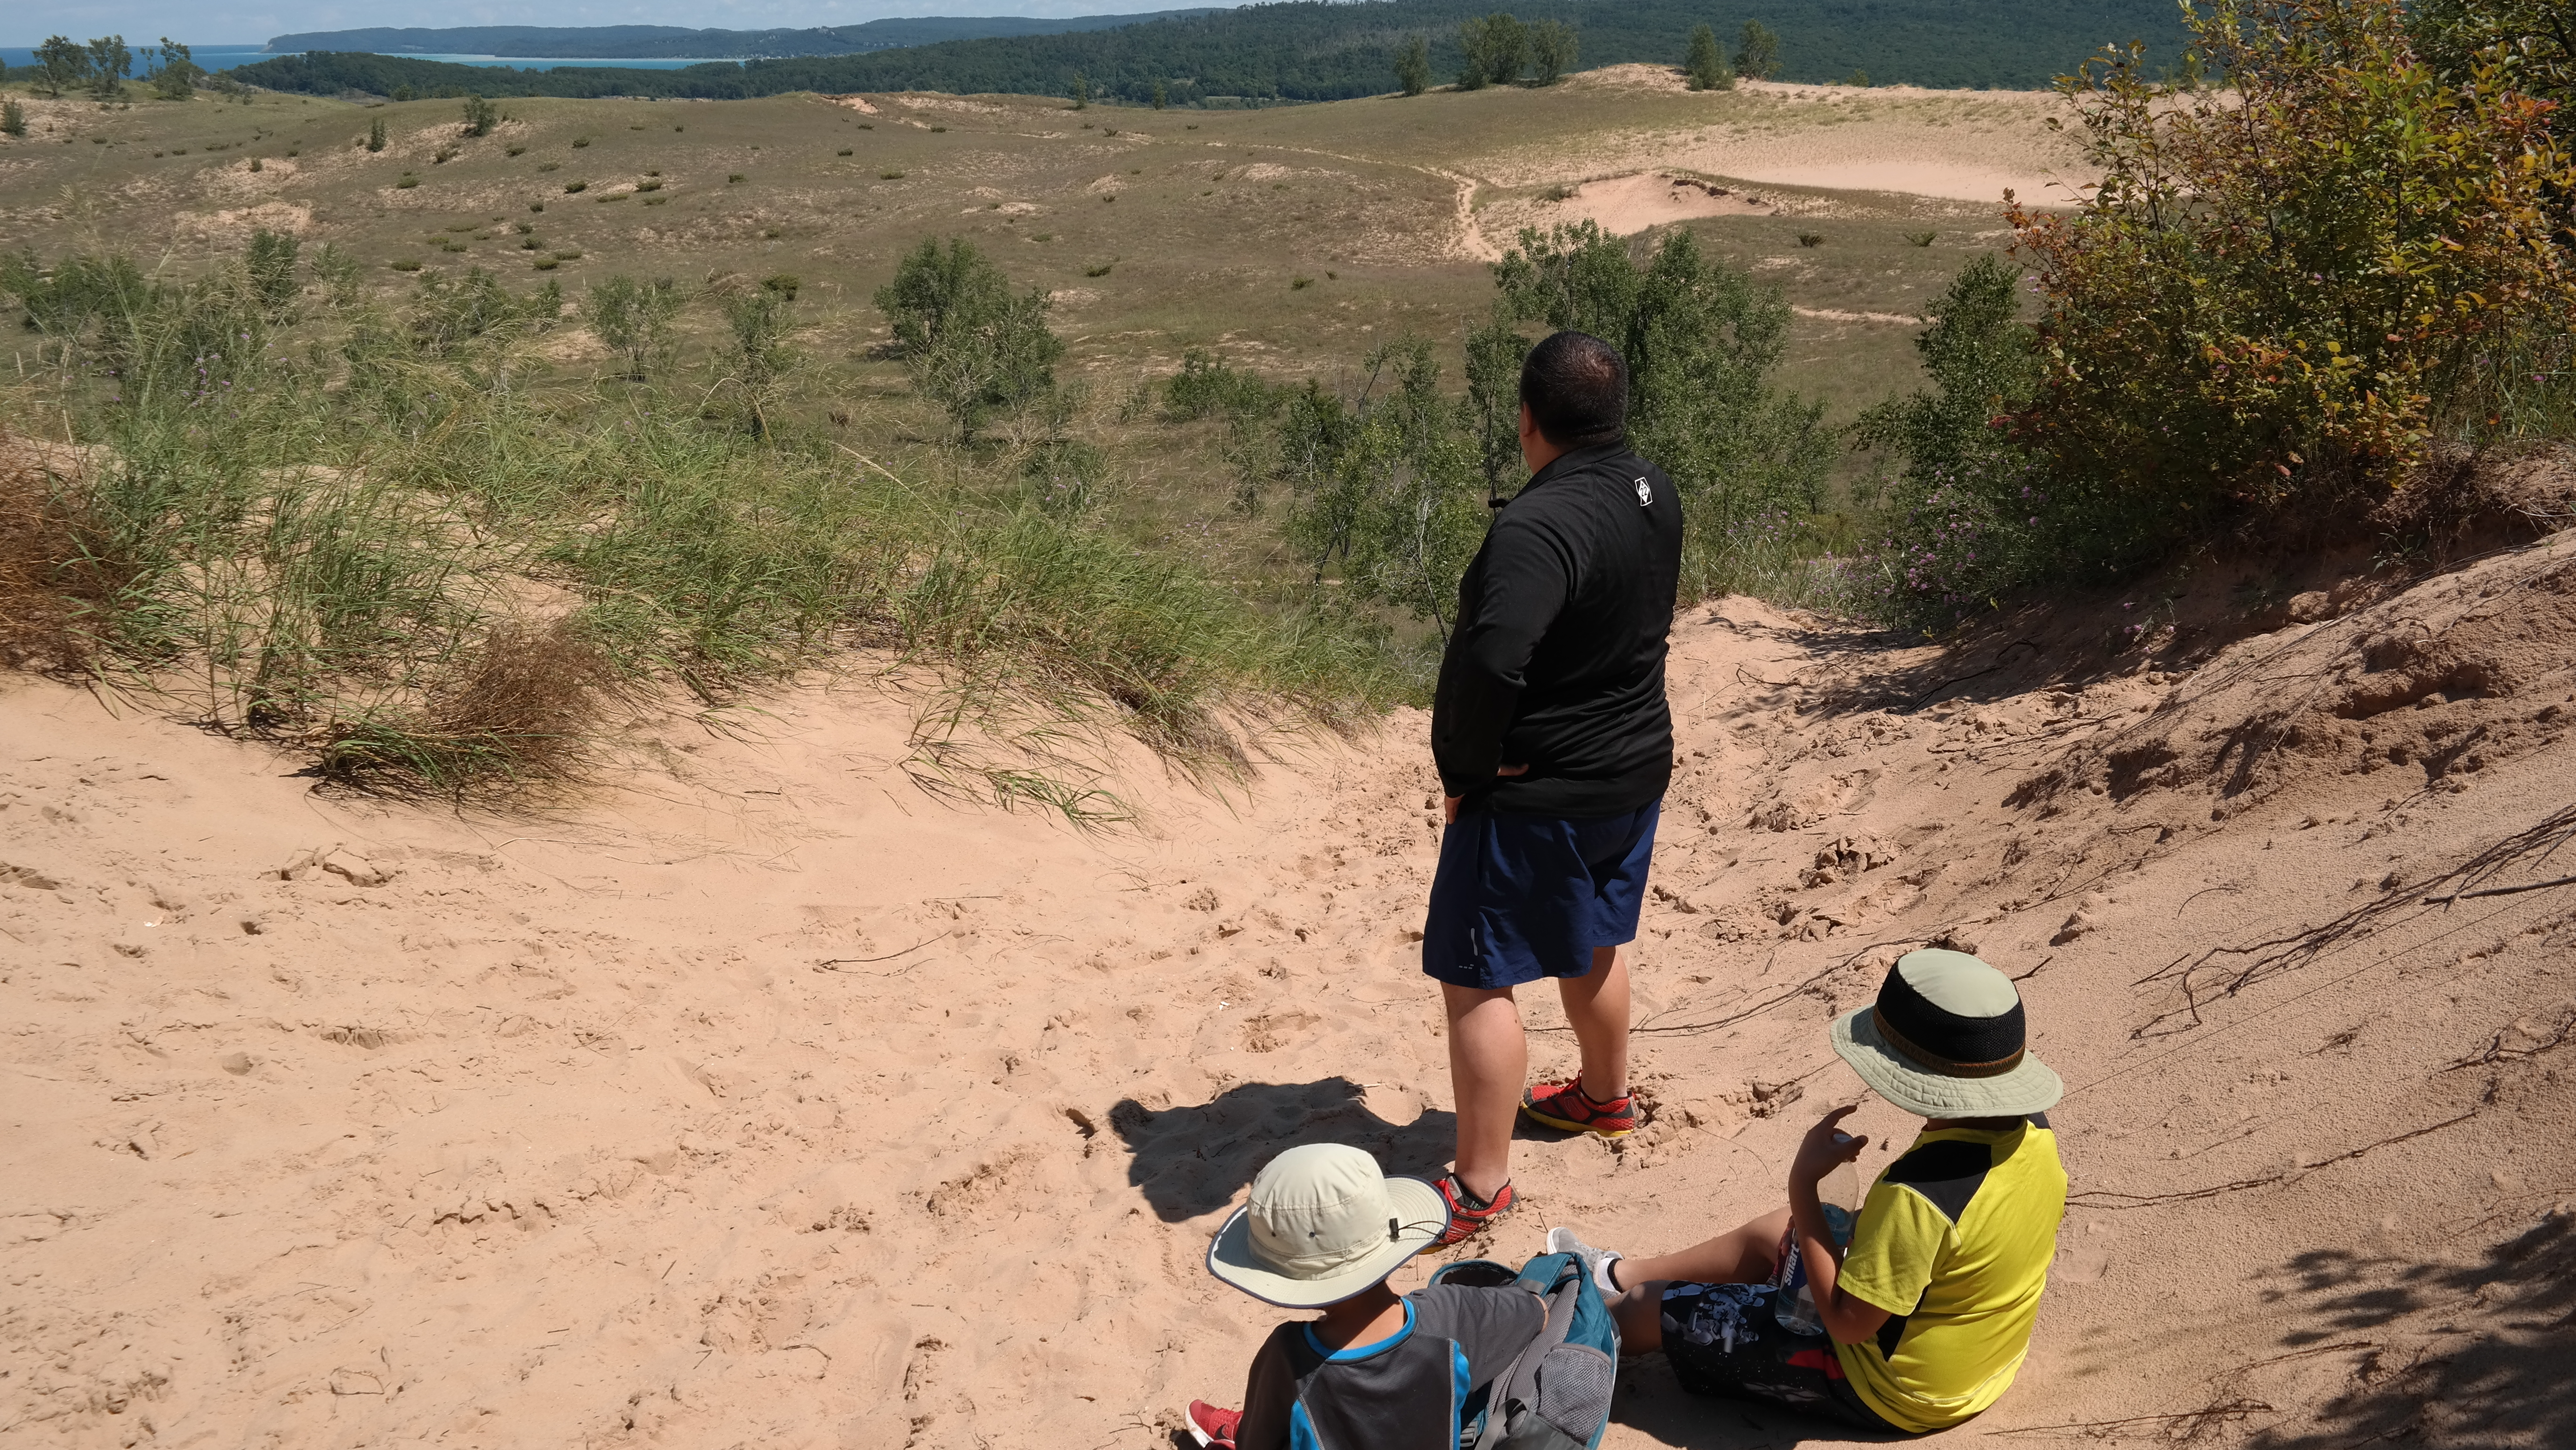 Find New Roads in Traverse City and Sleeping Bear Dunes National Lakeshore